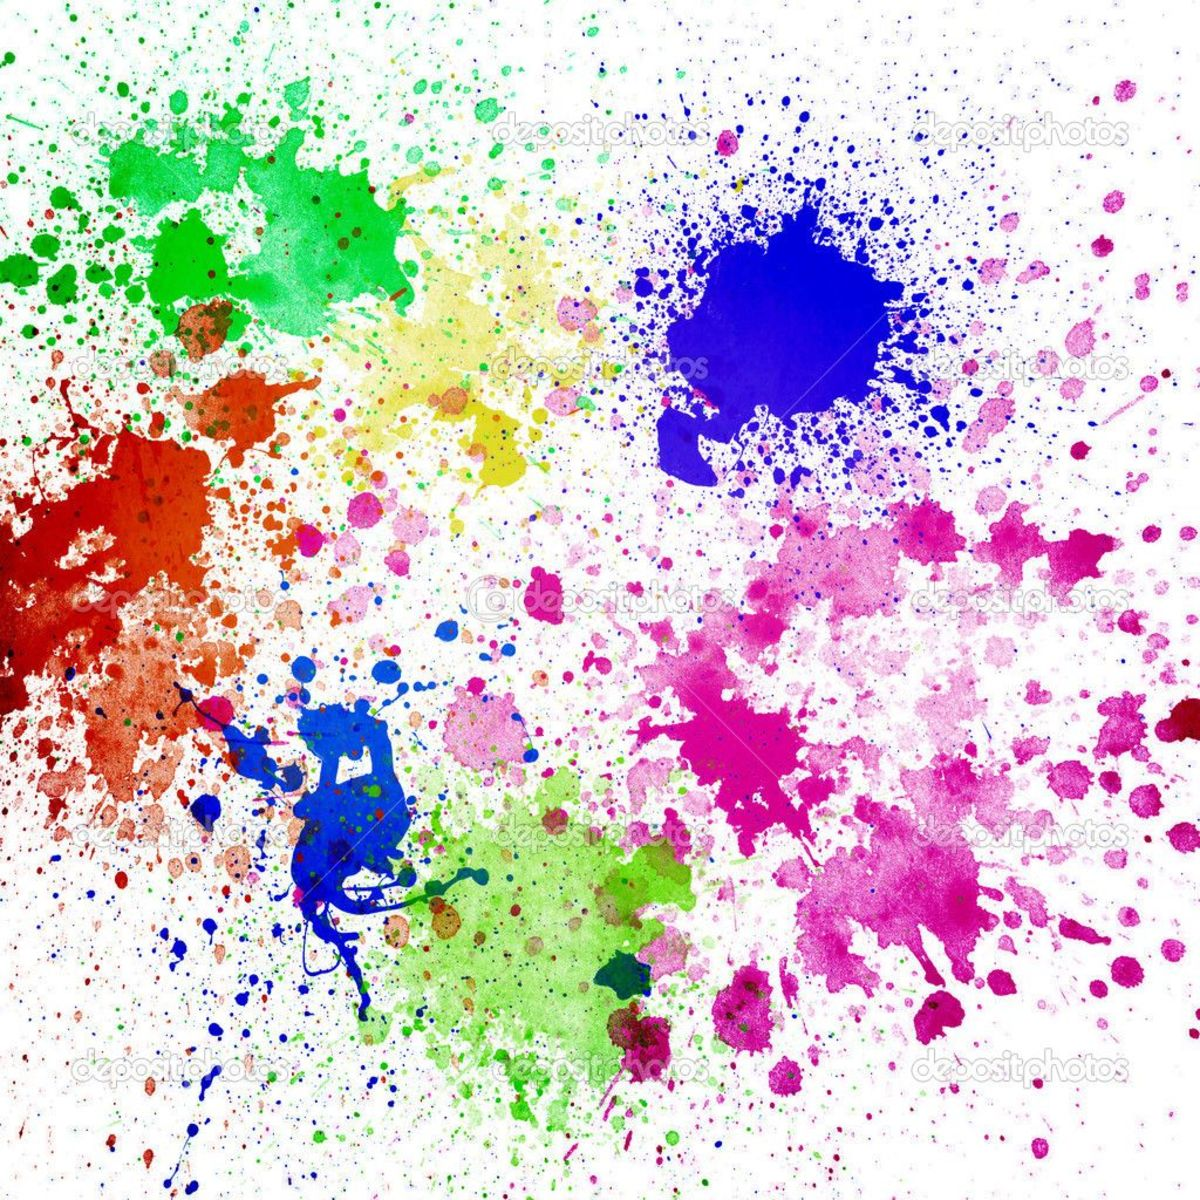 Ink splashes and splatters for a unique background.